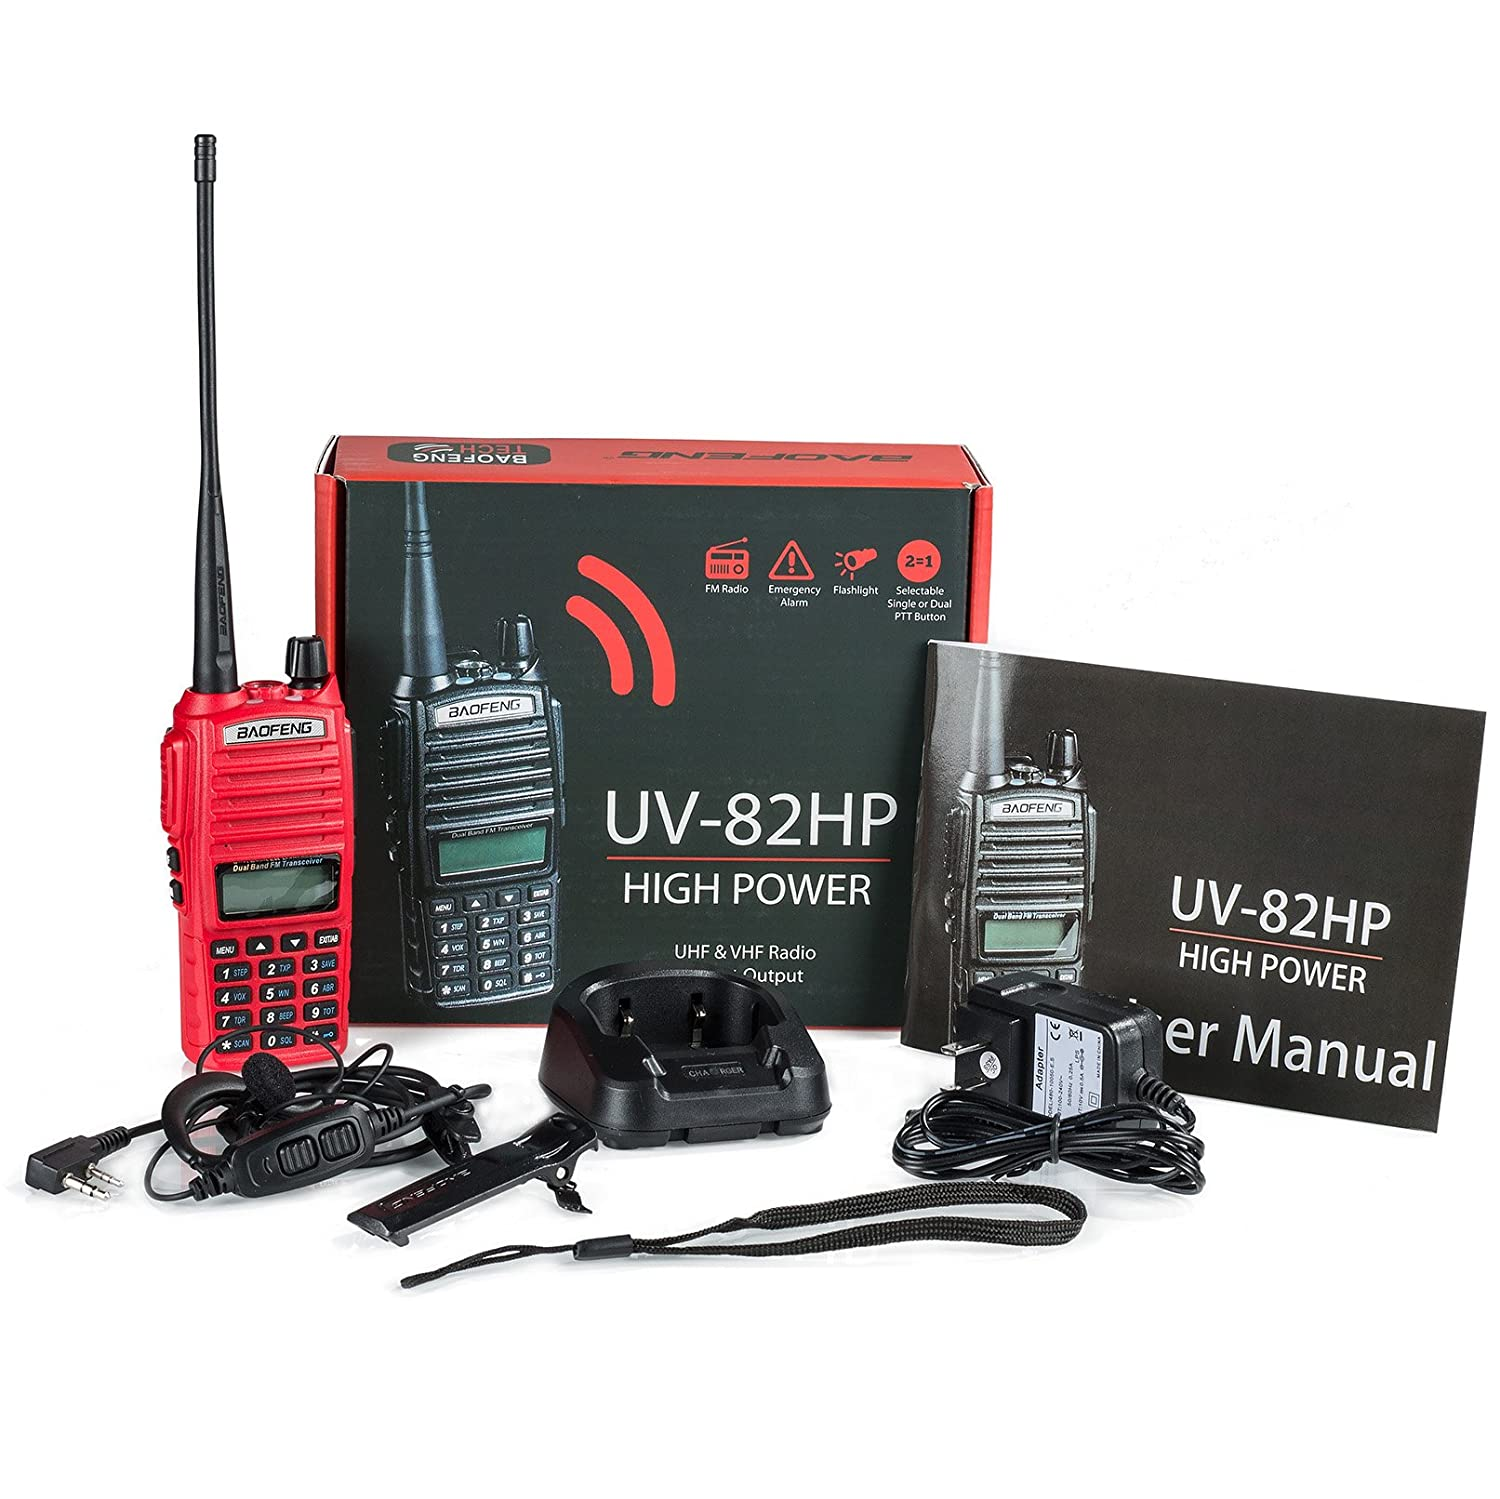 BaoFeng UV-82HP RED High Power Dual Band Radio 136-174mhz VHF 400-520mhz UHF Amateur Ham Portable Two-Way